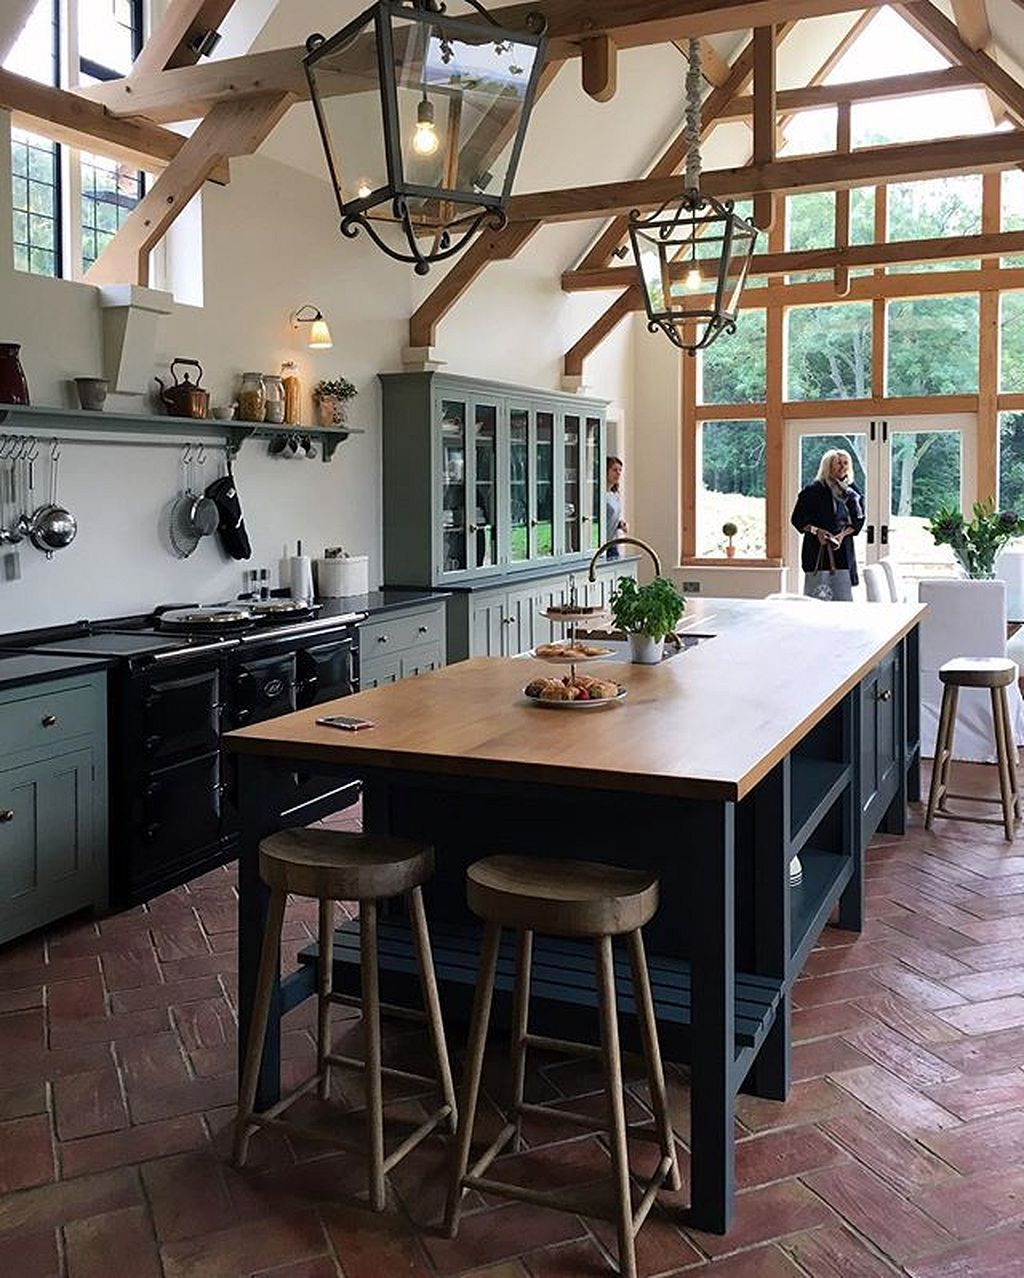 English Kitchen Design: English Country Kitchens, Devol Kitchens, Home Decor